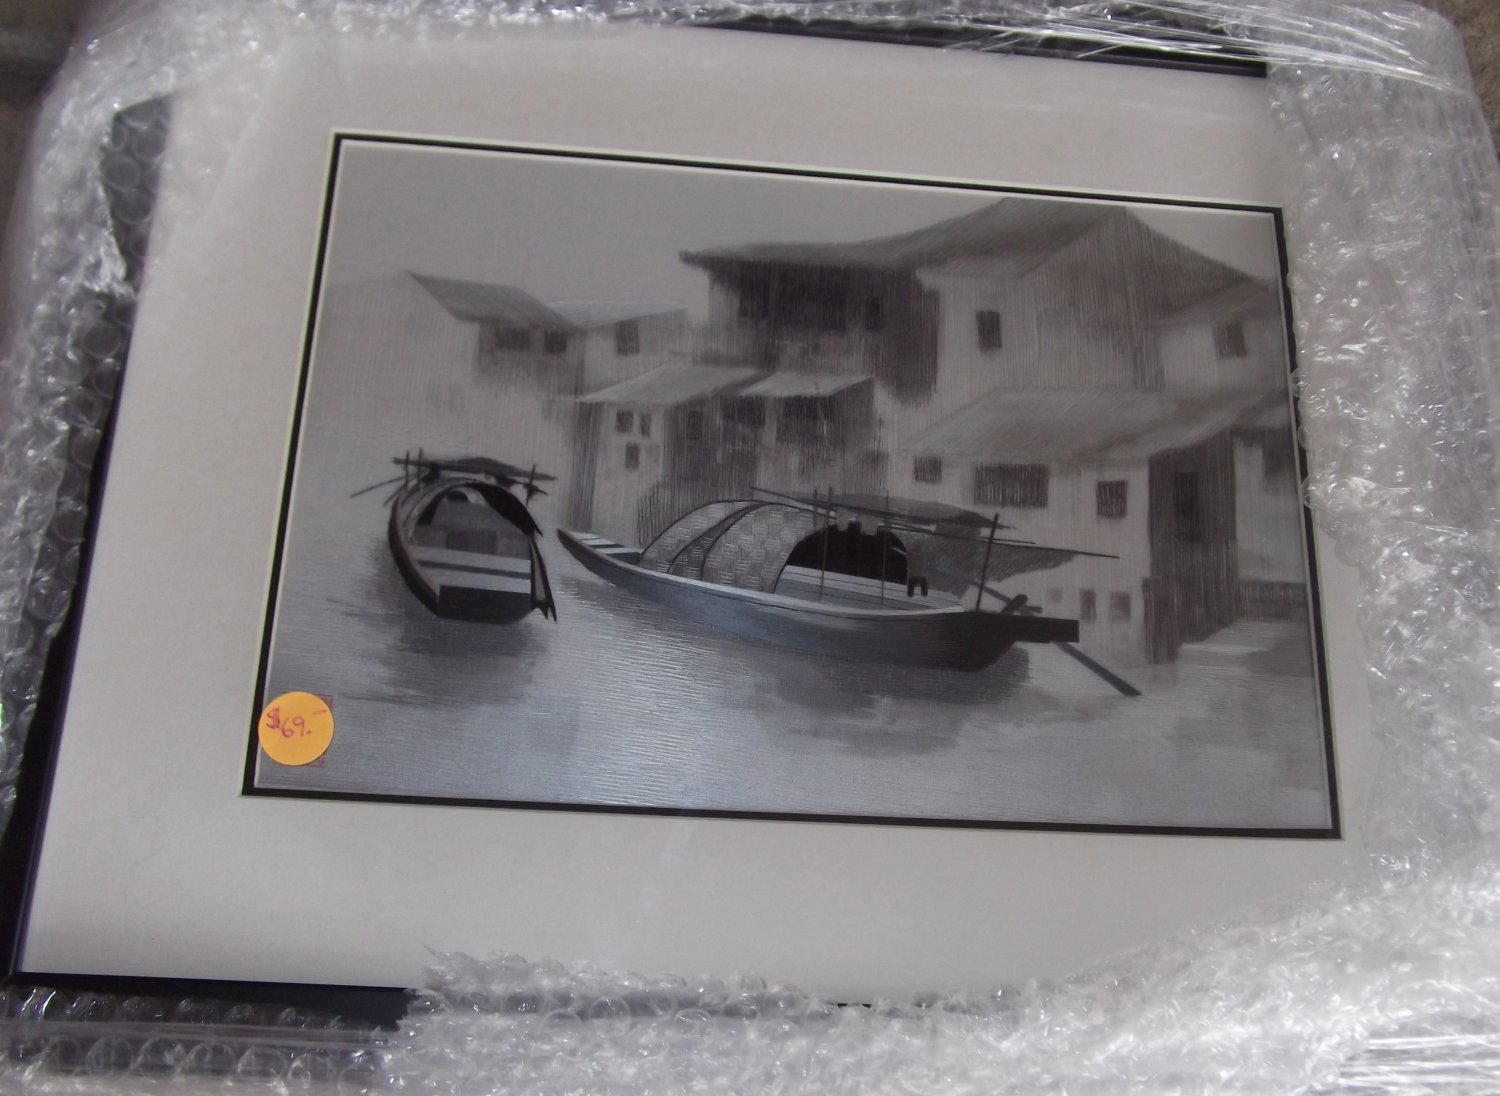 Boat on river with house in background